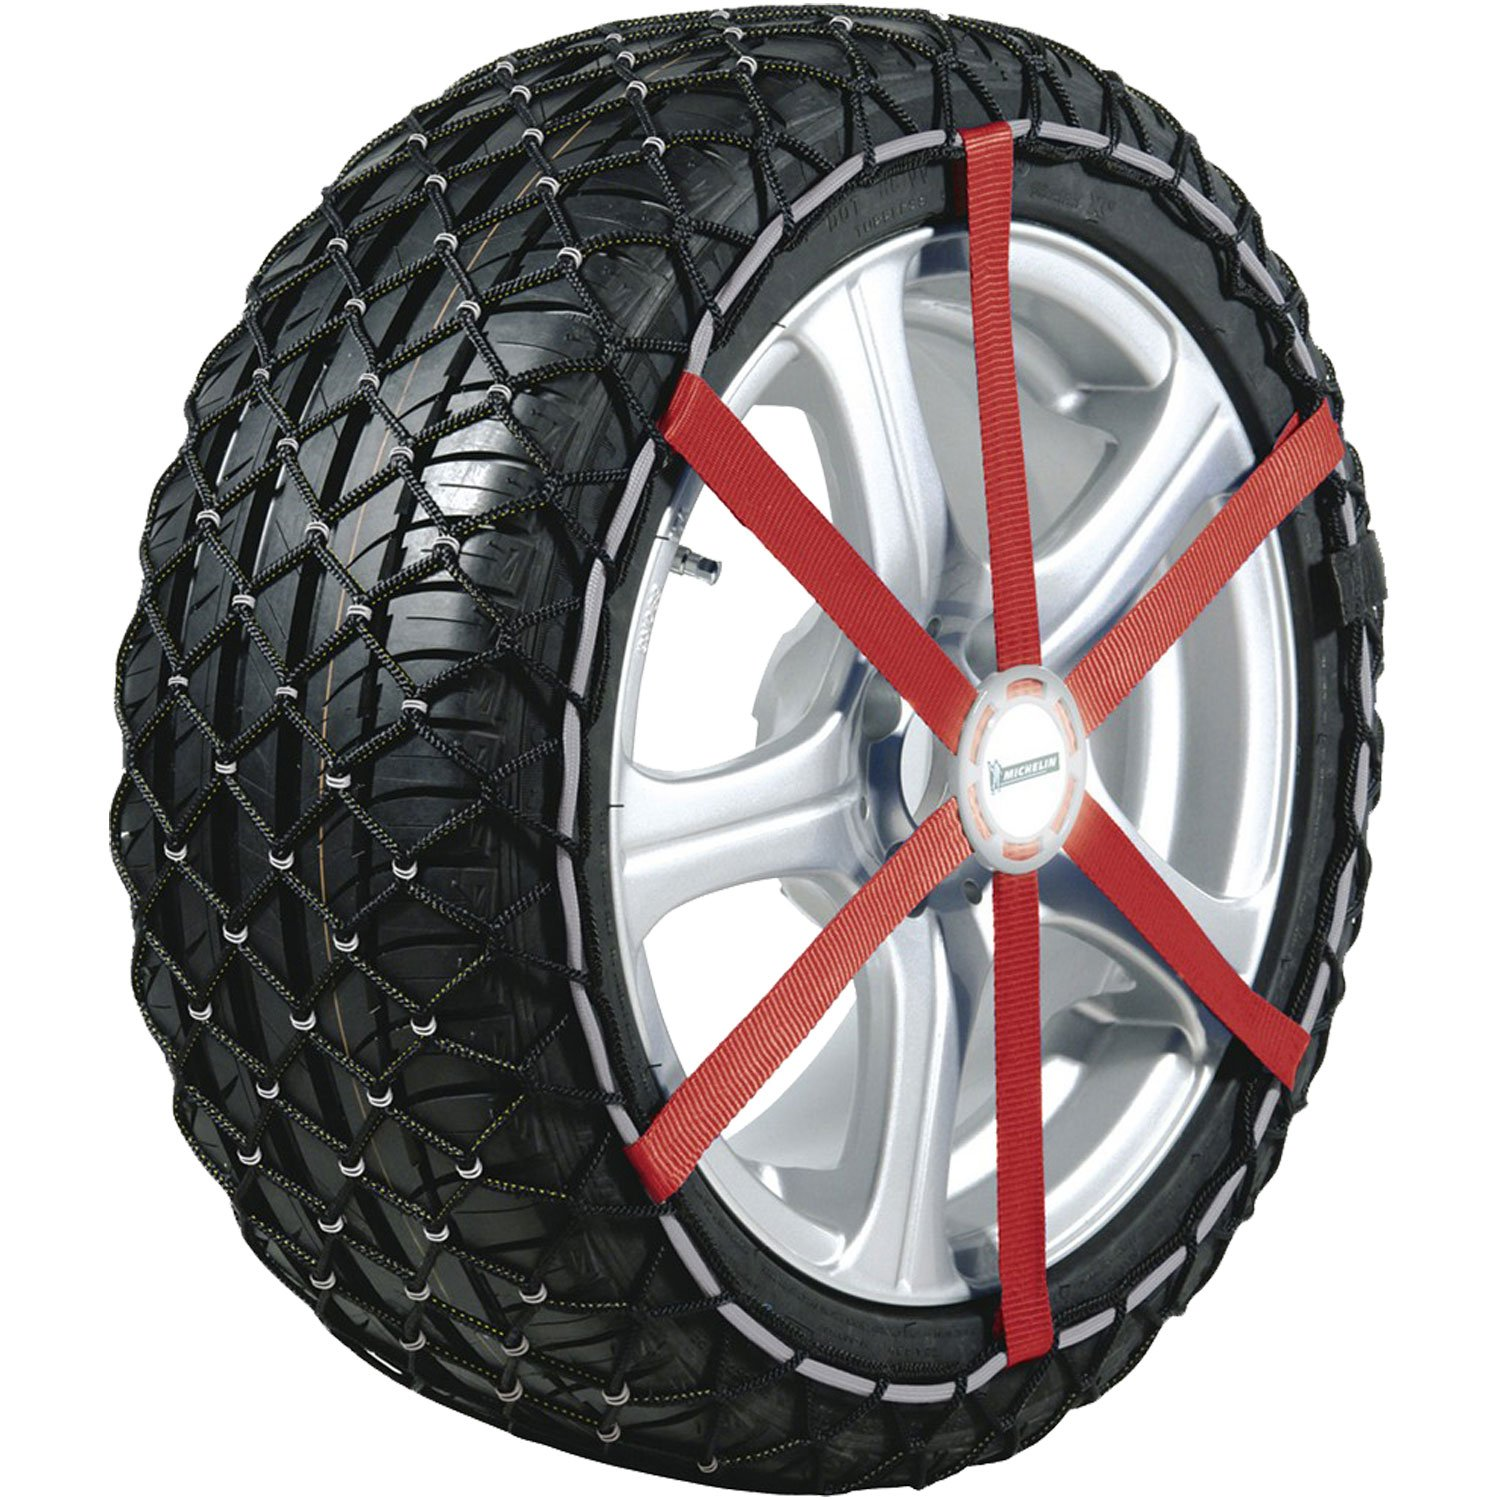 Michelin 92303 Textilschneeketten Easy Grip L13, ABS und ESP kompatibel, TÜ V/GS und Ö NORM, 2 Stü ck Michelin - License